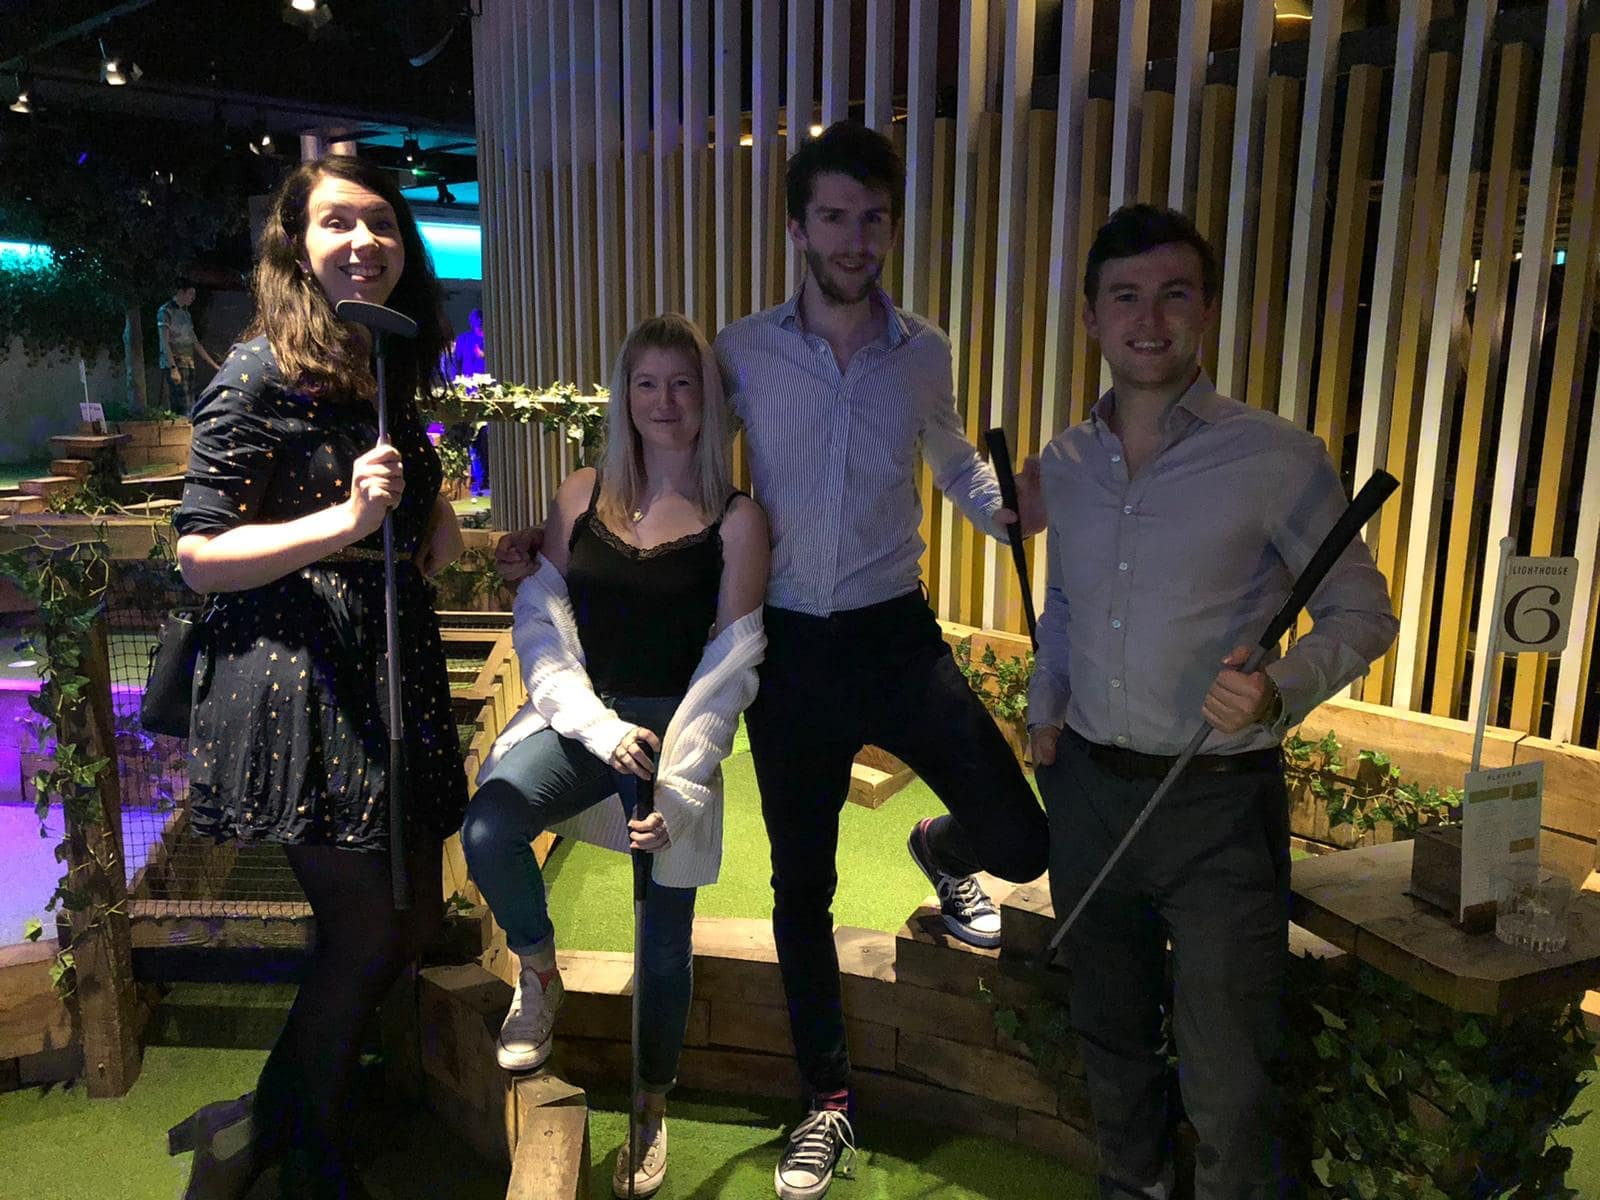 Swingers Golf – The City